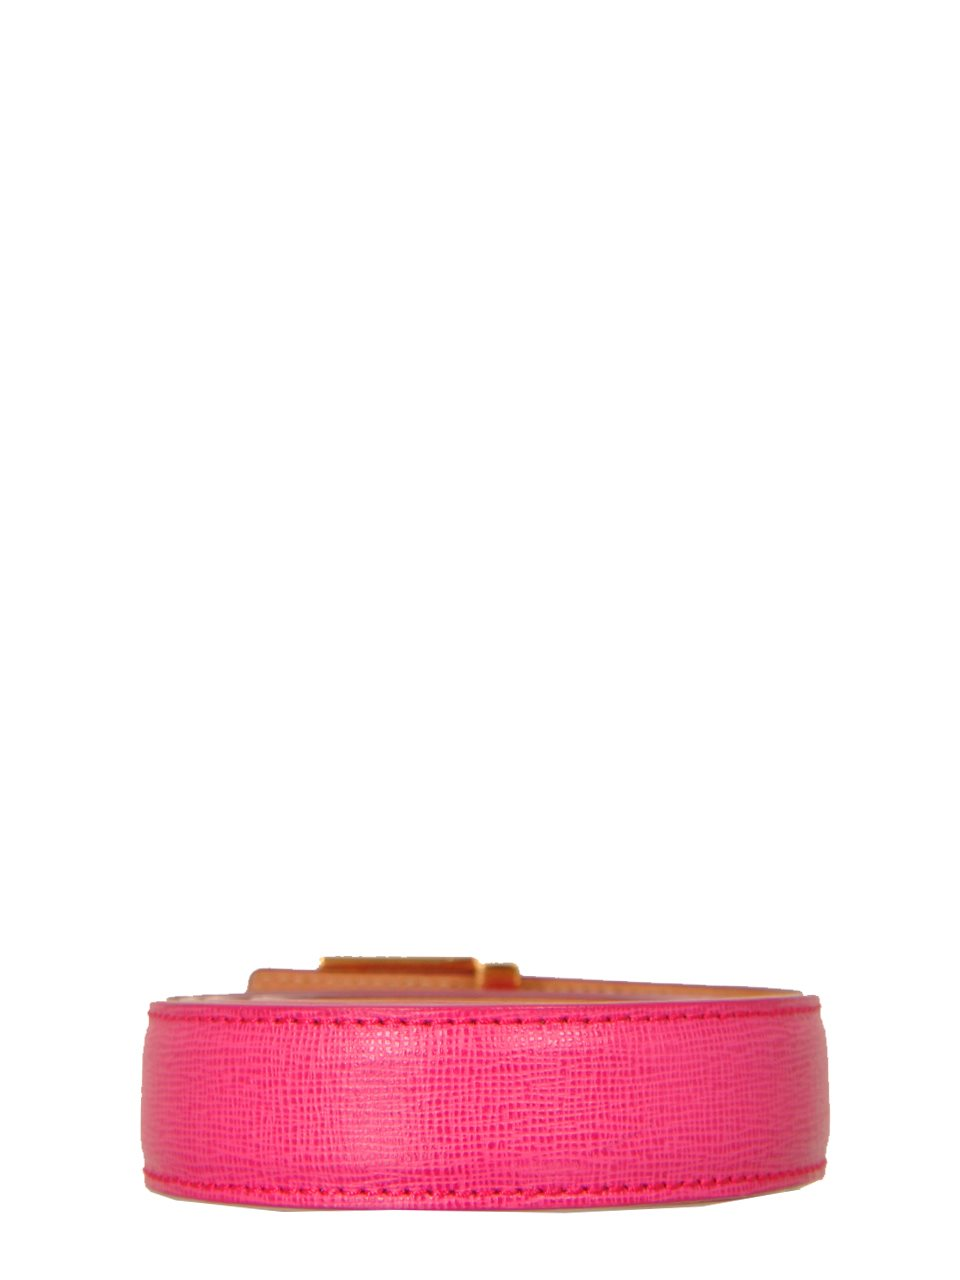 Fendi - Leather Belt - Image 5 of 5